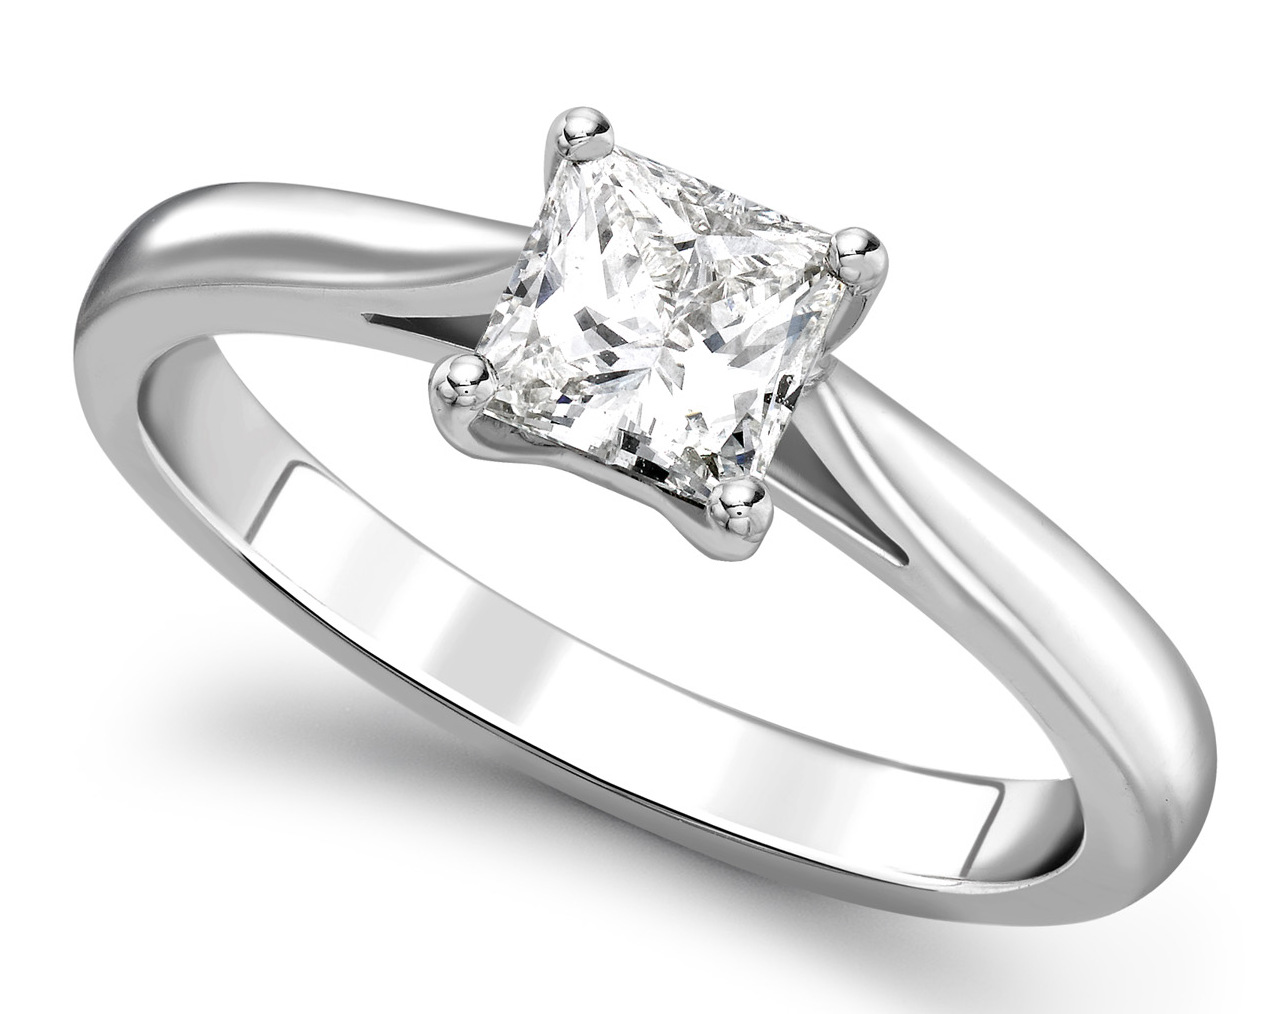 Princess Cut Four Claw White Gold Engagement Ring GRC785 Main Image